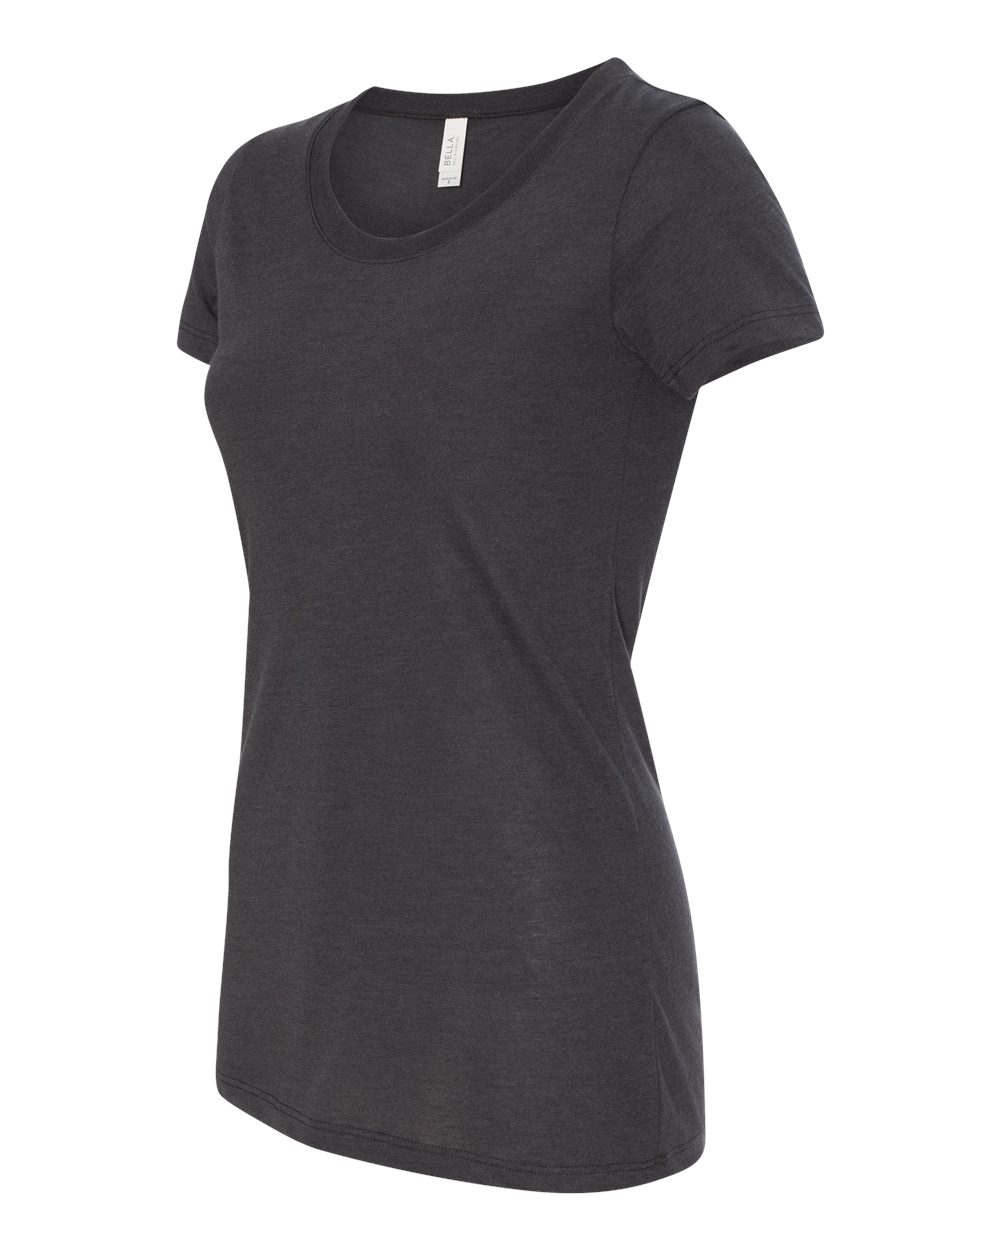 Bella-Canvas-Women-039-s-Triblend-Short-Sleeve-T-Shirt-B8413-S-2XL thumbnail 57